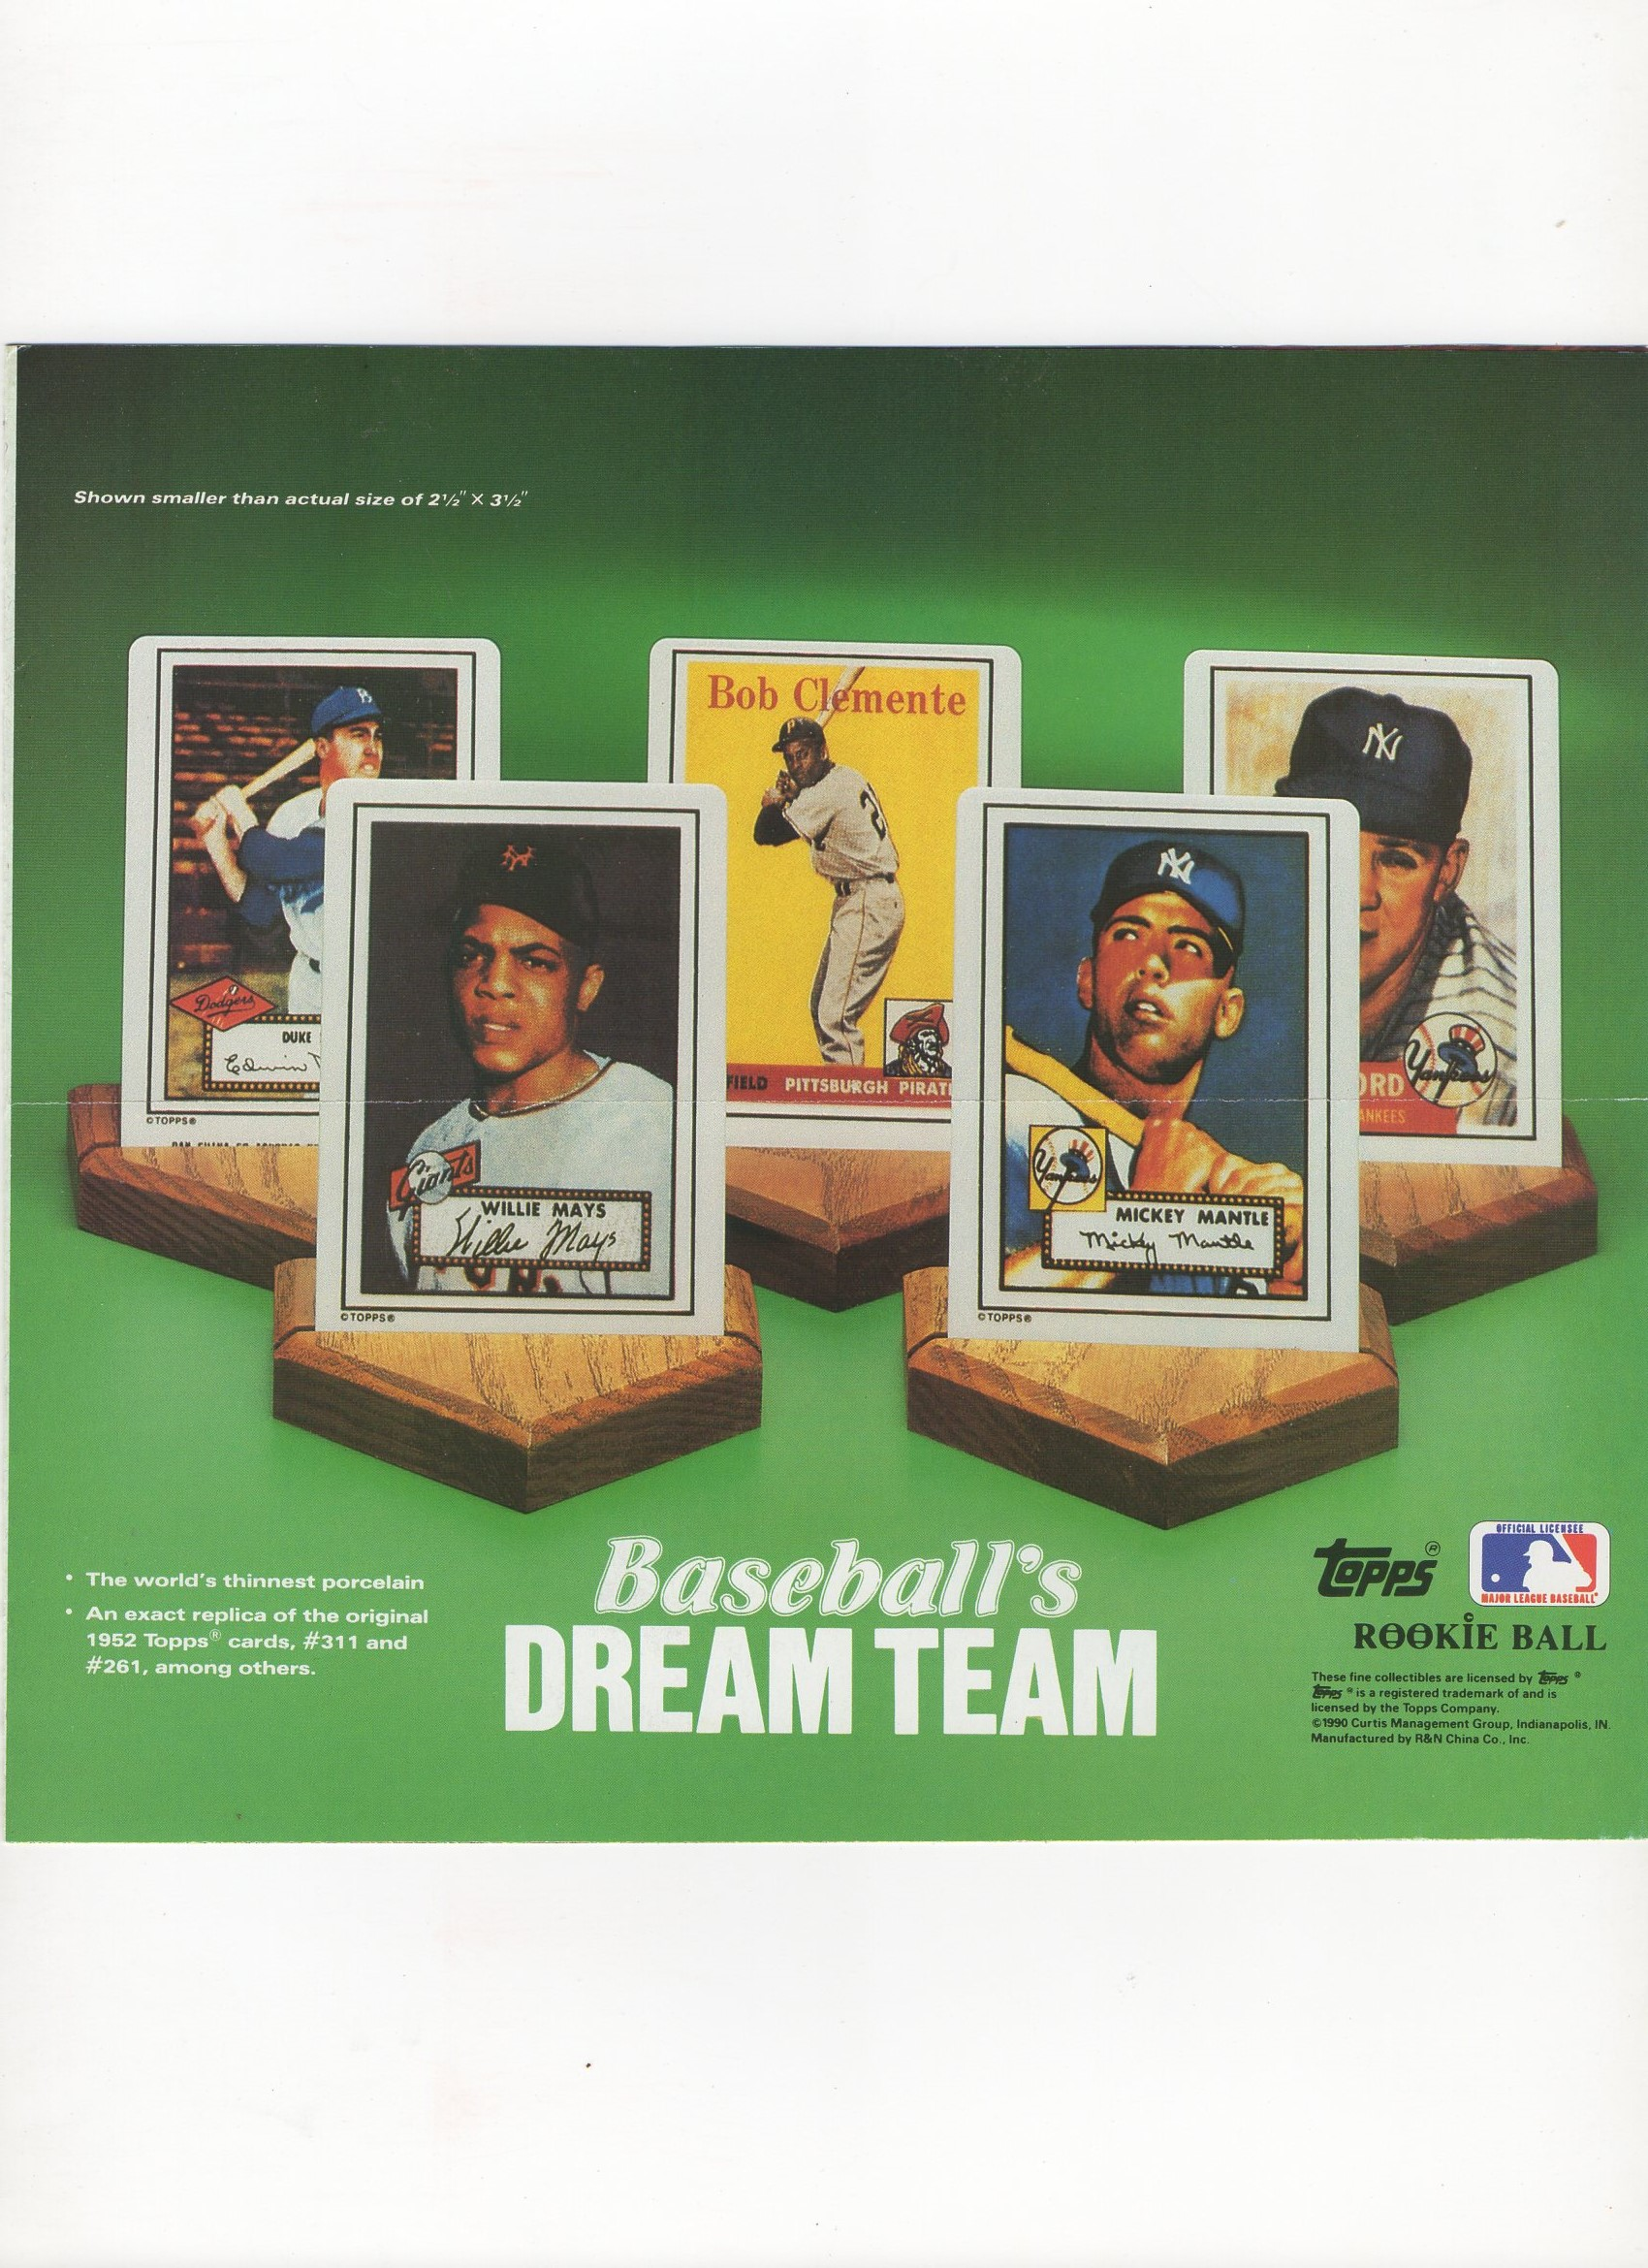 1990/91 topps/hamilton, 4 page flyer